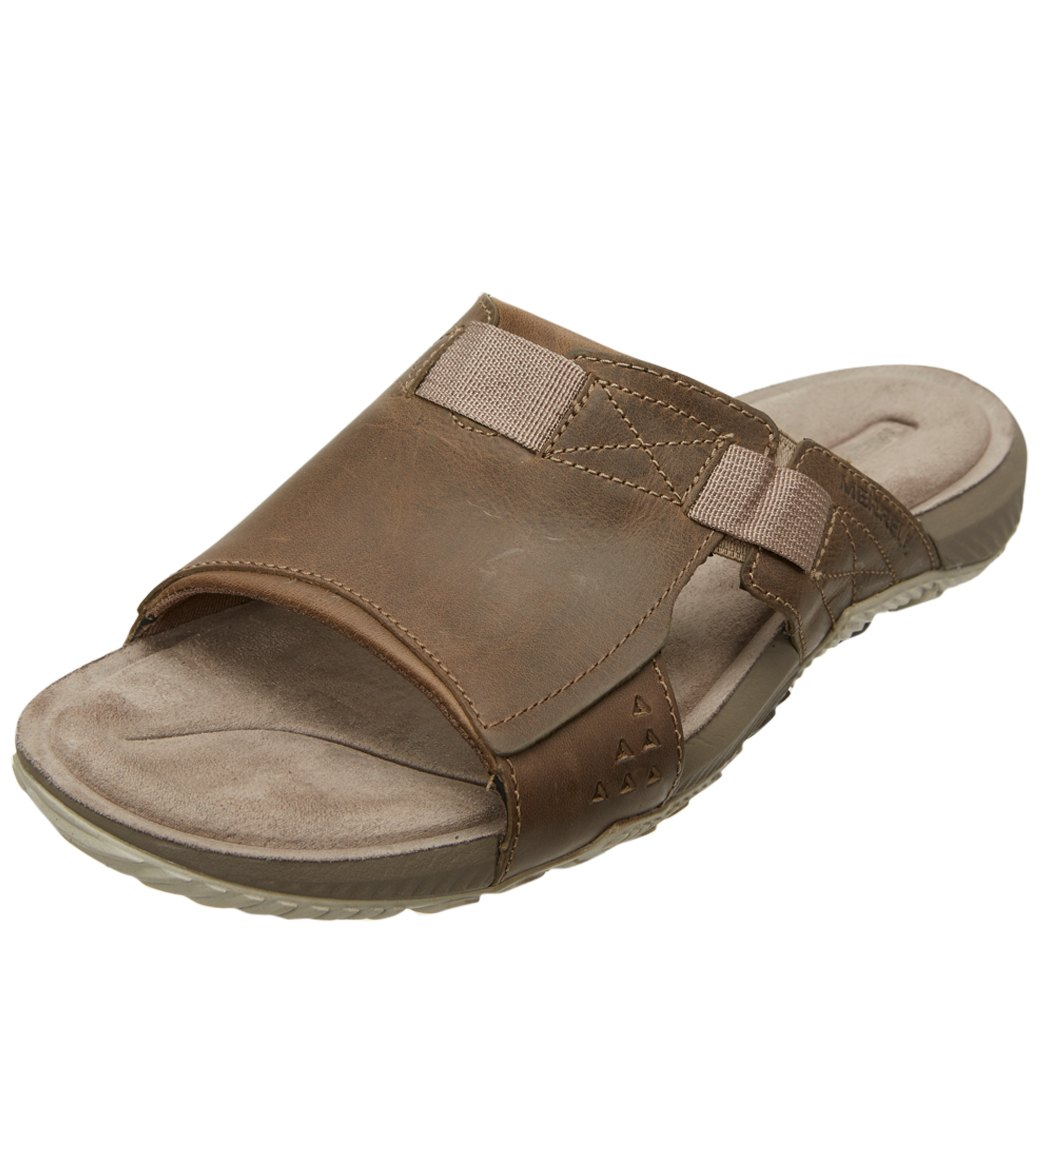 318d7c9c9c5f Merrell Men s Terrant Slide at SwimOutlet.com - Free Shipping